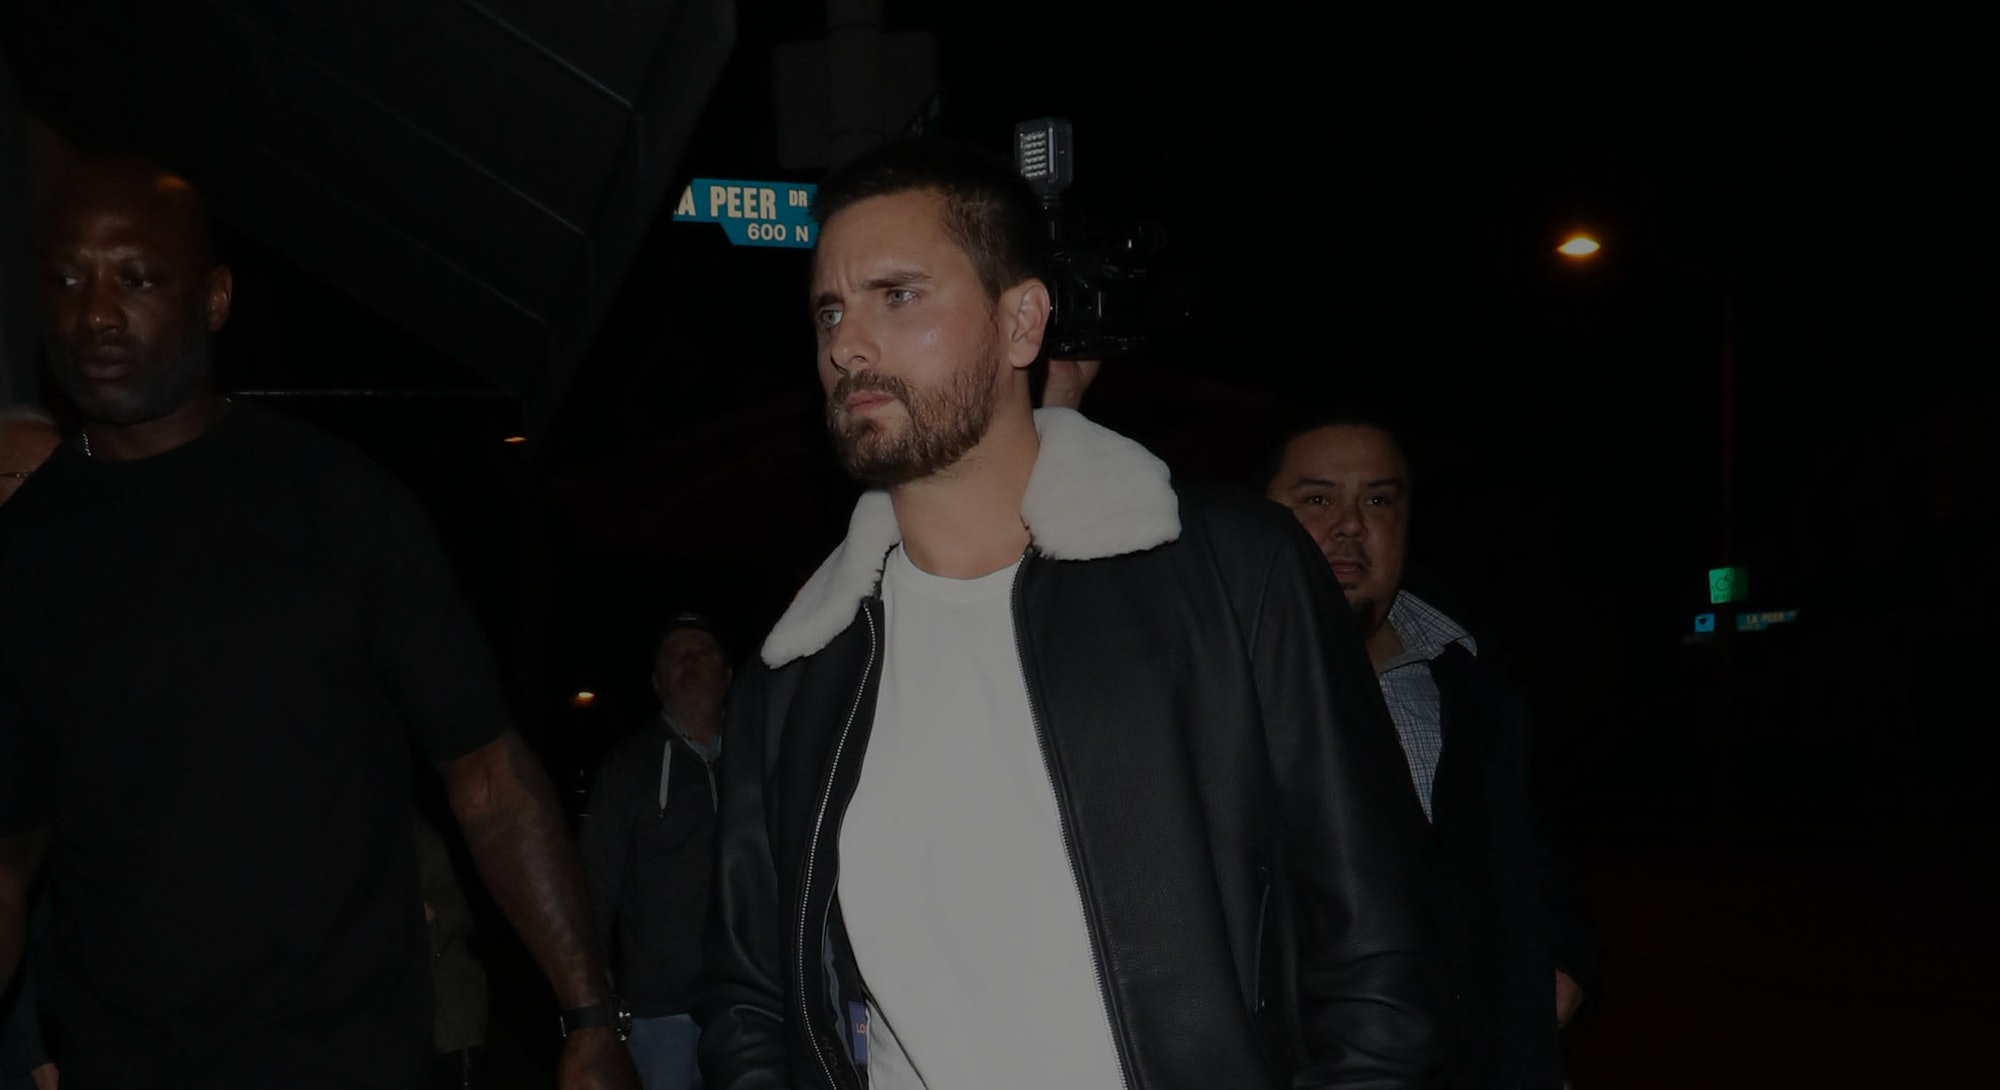 LOS ANGELES, CA - NOVEMBER 16:  Scott Disick is seen on November 16, 2018 in Los Angeles, CA.  (Photo by Hollywood To You/Star Max/GC Images)